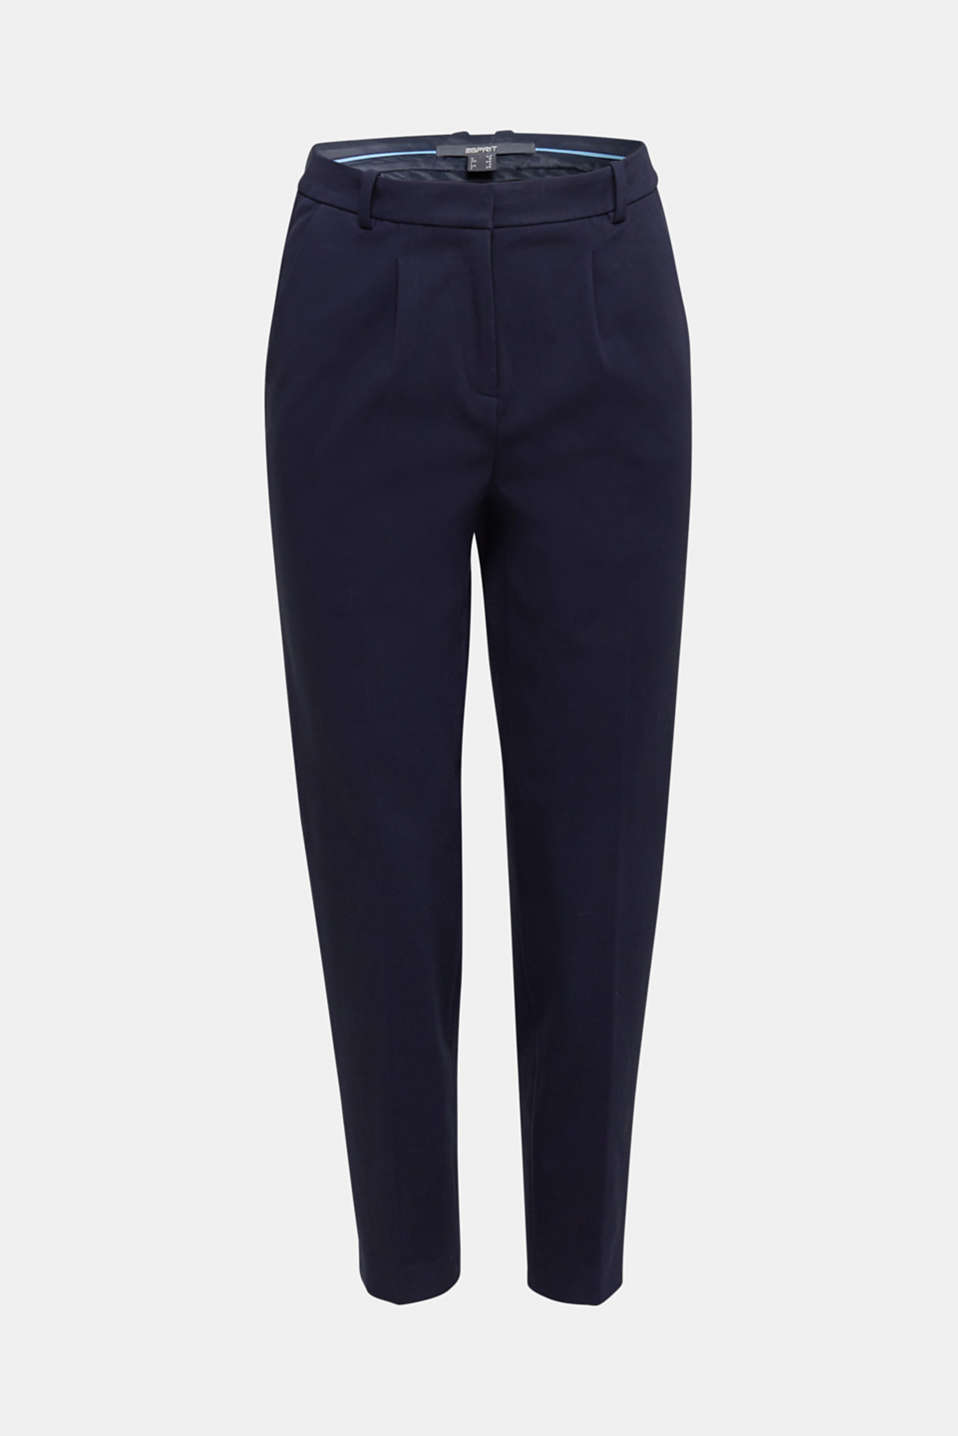 MODERN Mix + Match trousers with a high-rise waist, NAVY, detail image number 7